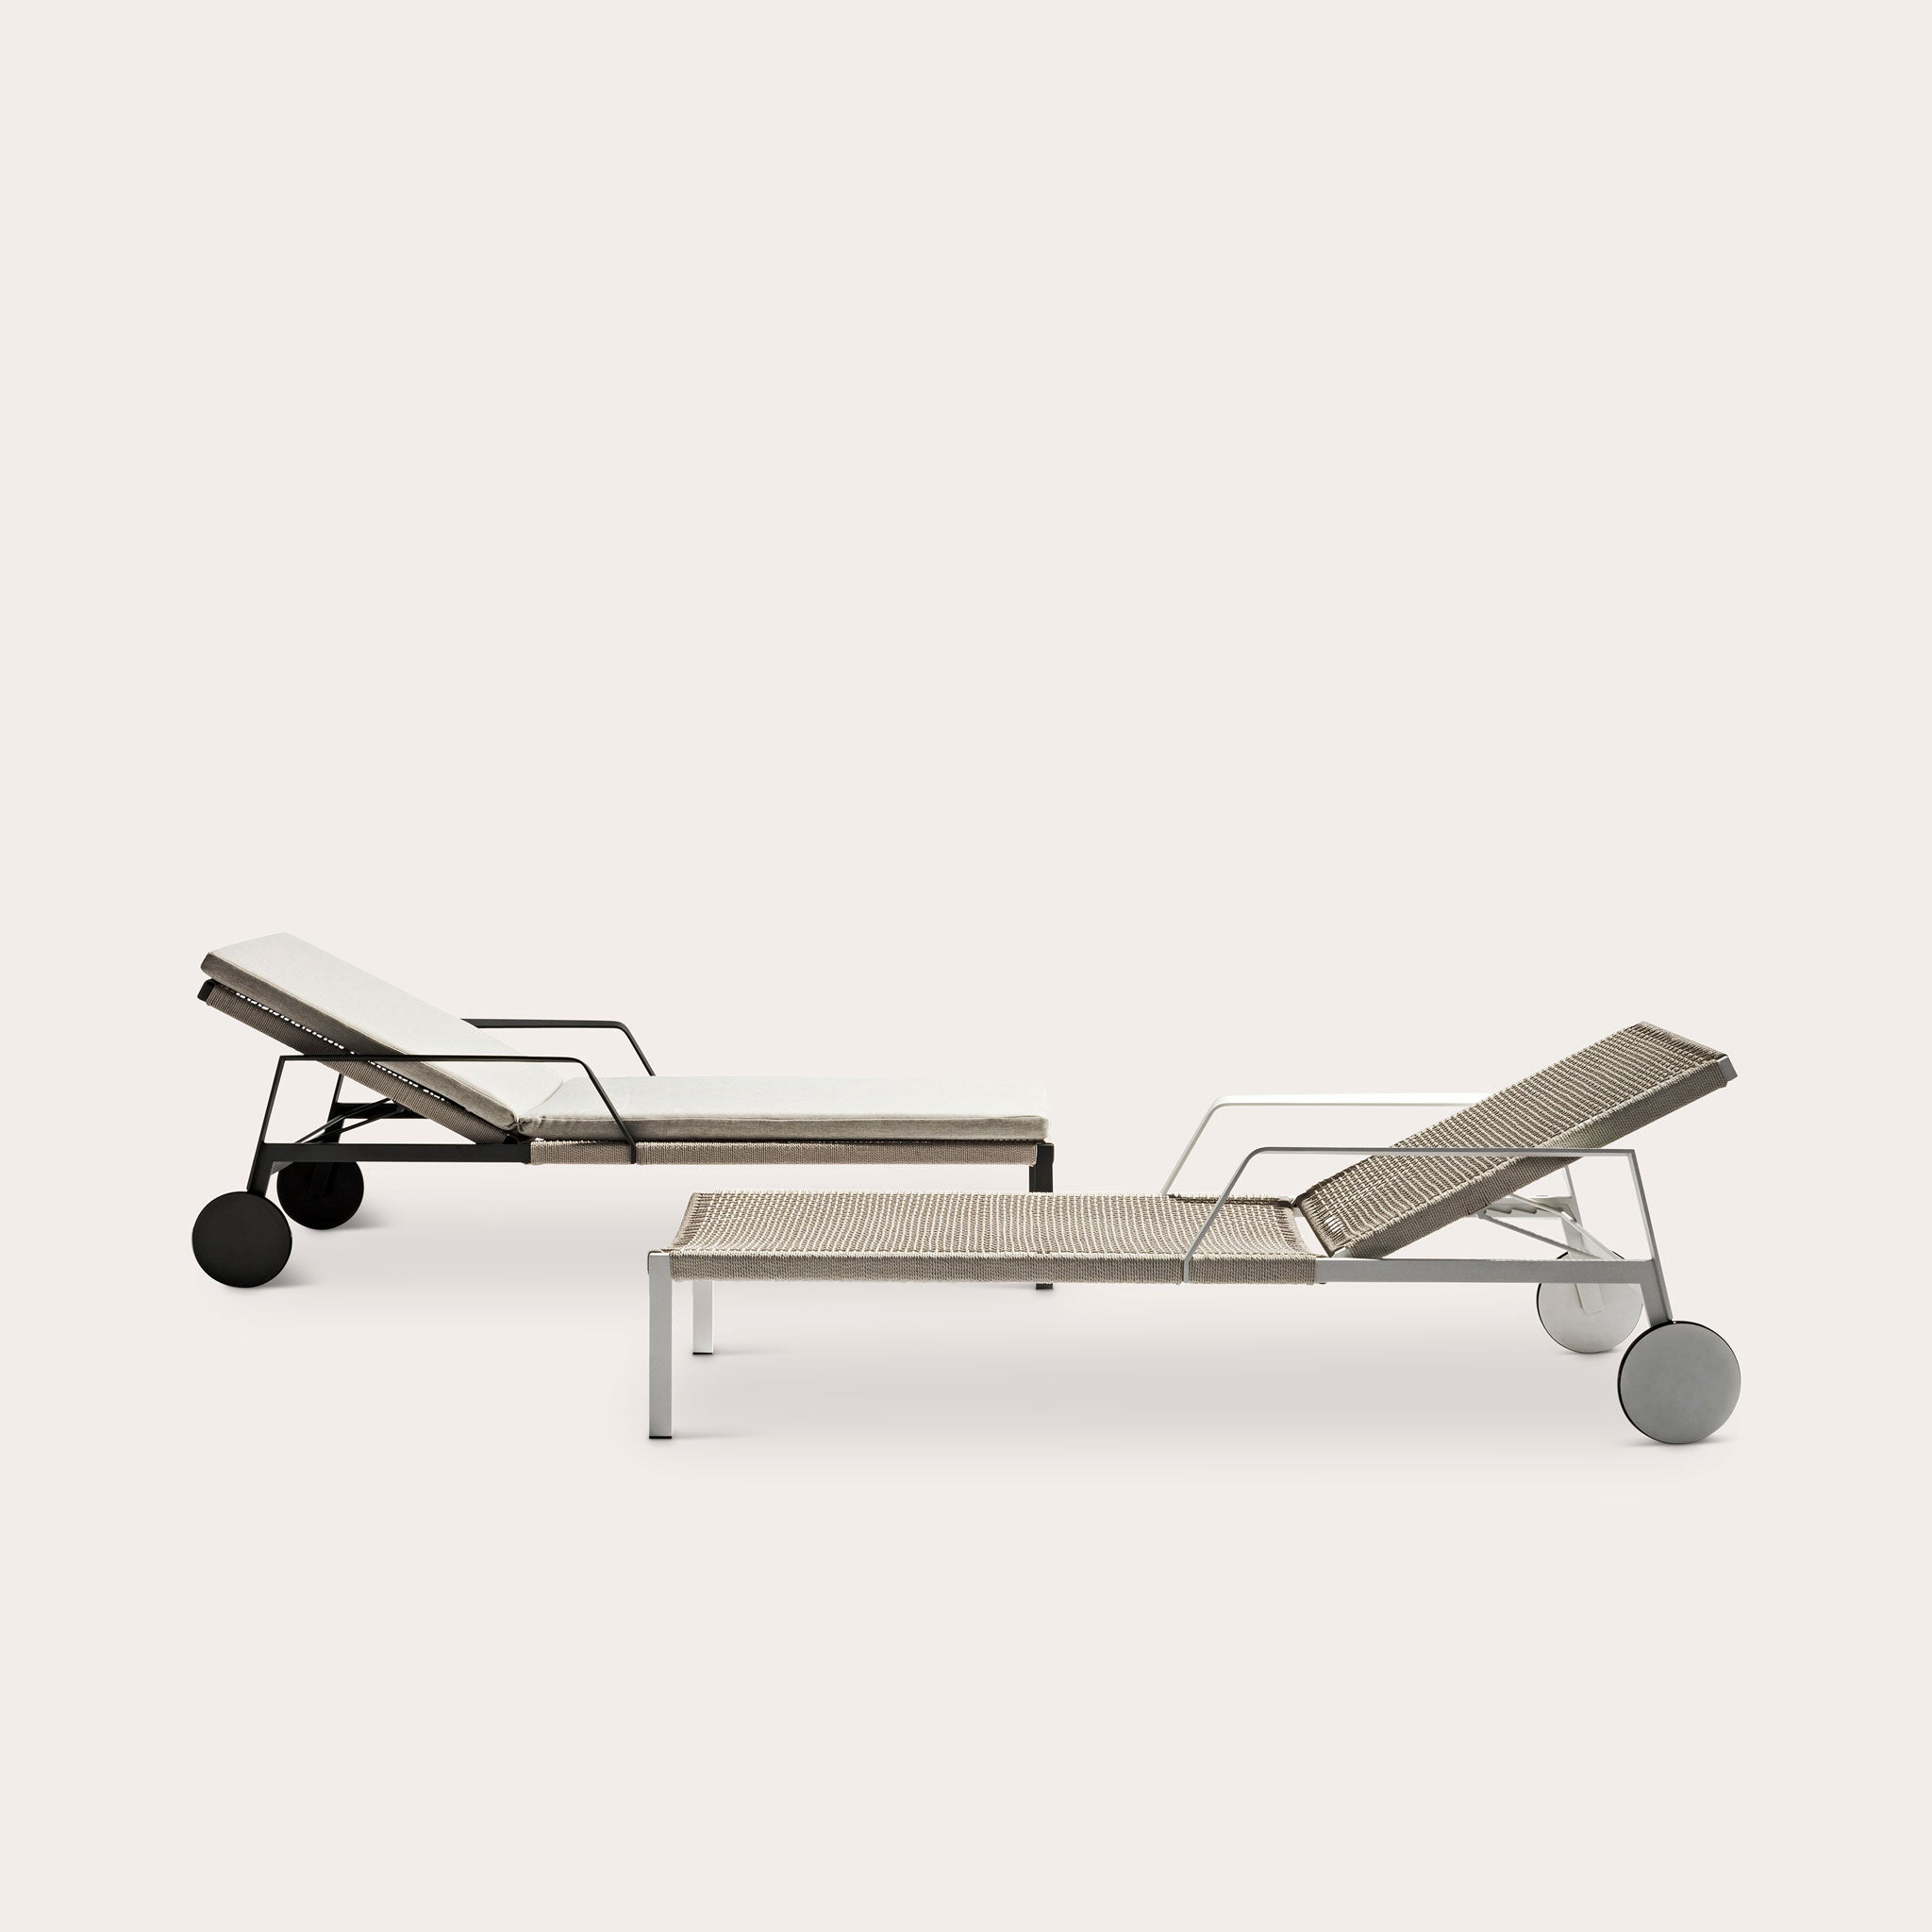 NODI Lounger Outdoor Yabu Pushelberg Designer Furniture Sku: 007-200-11491